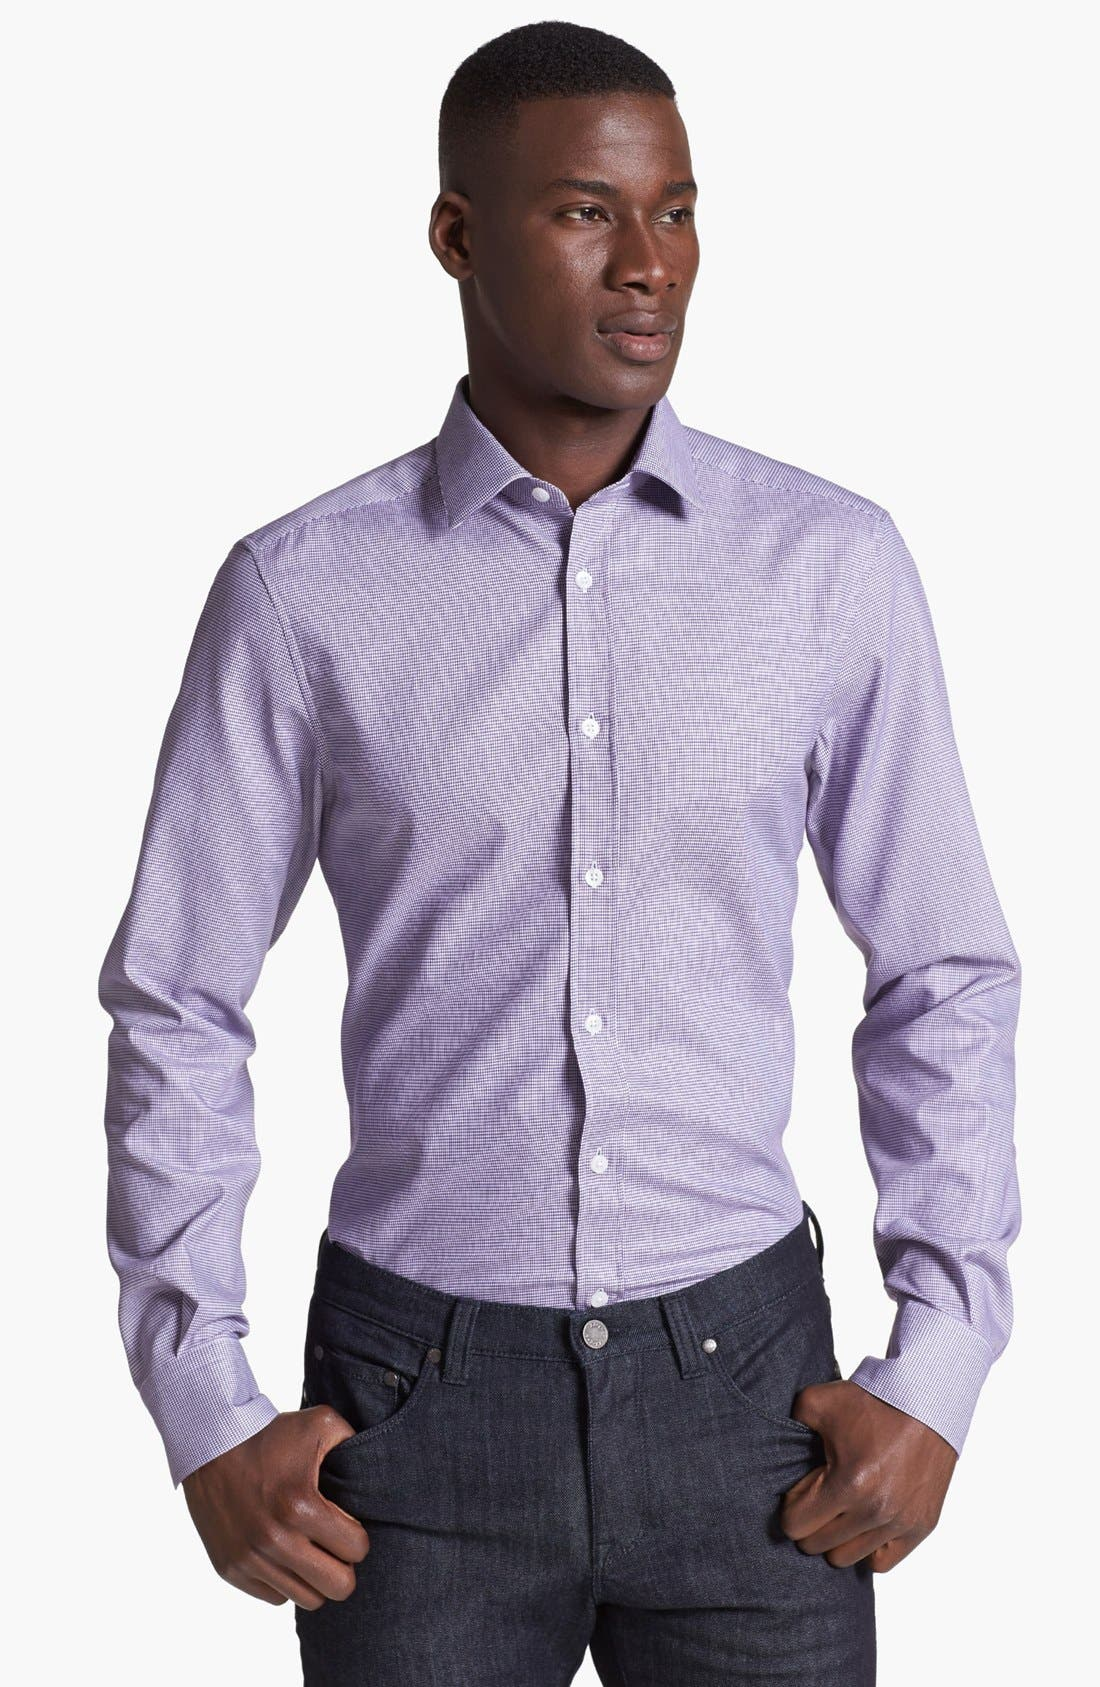 Alternate Image 1 Selected - Z Zegna Jacquard Woven Shirt